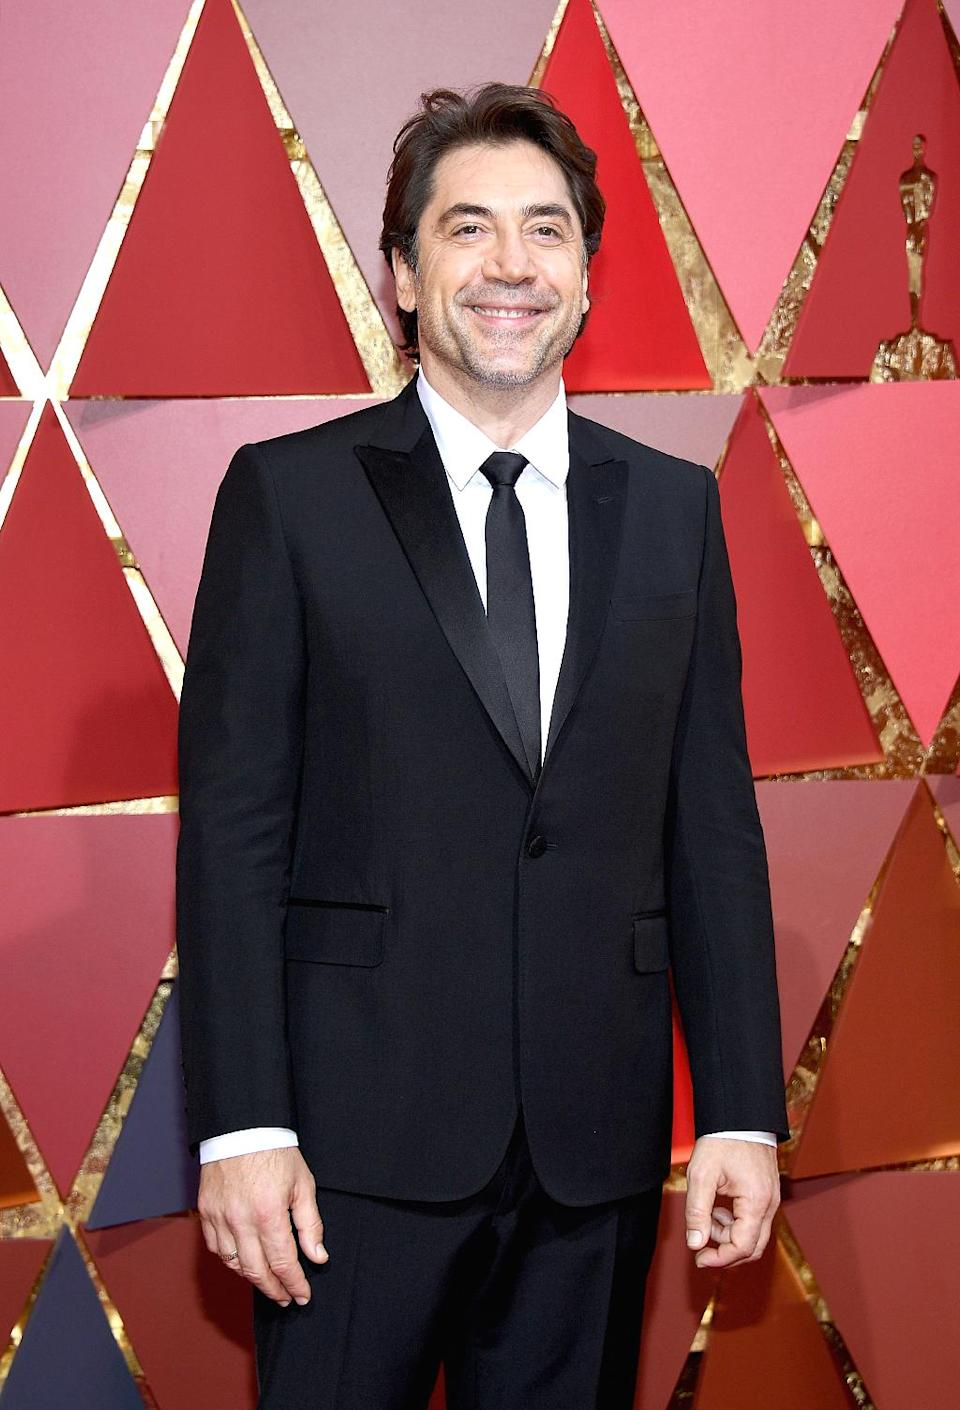 <p>Javier Bardem attends the 89th Annual Academy Awards at Hollywood & Highland Center on February 26, 2017 in Hollywood, California. (Photo by Kevork Djansezian/Getty Images) </p>